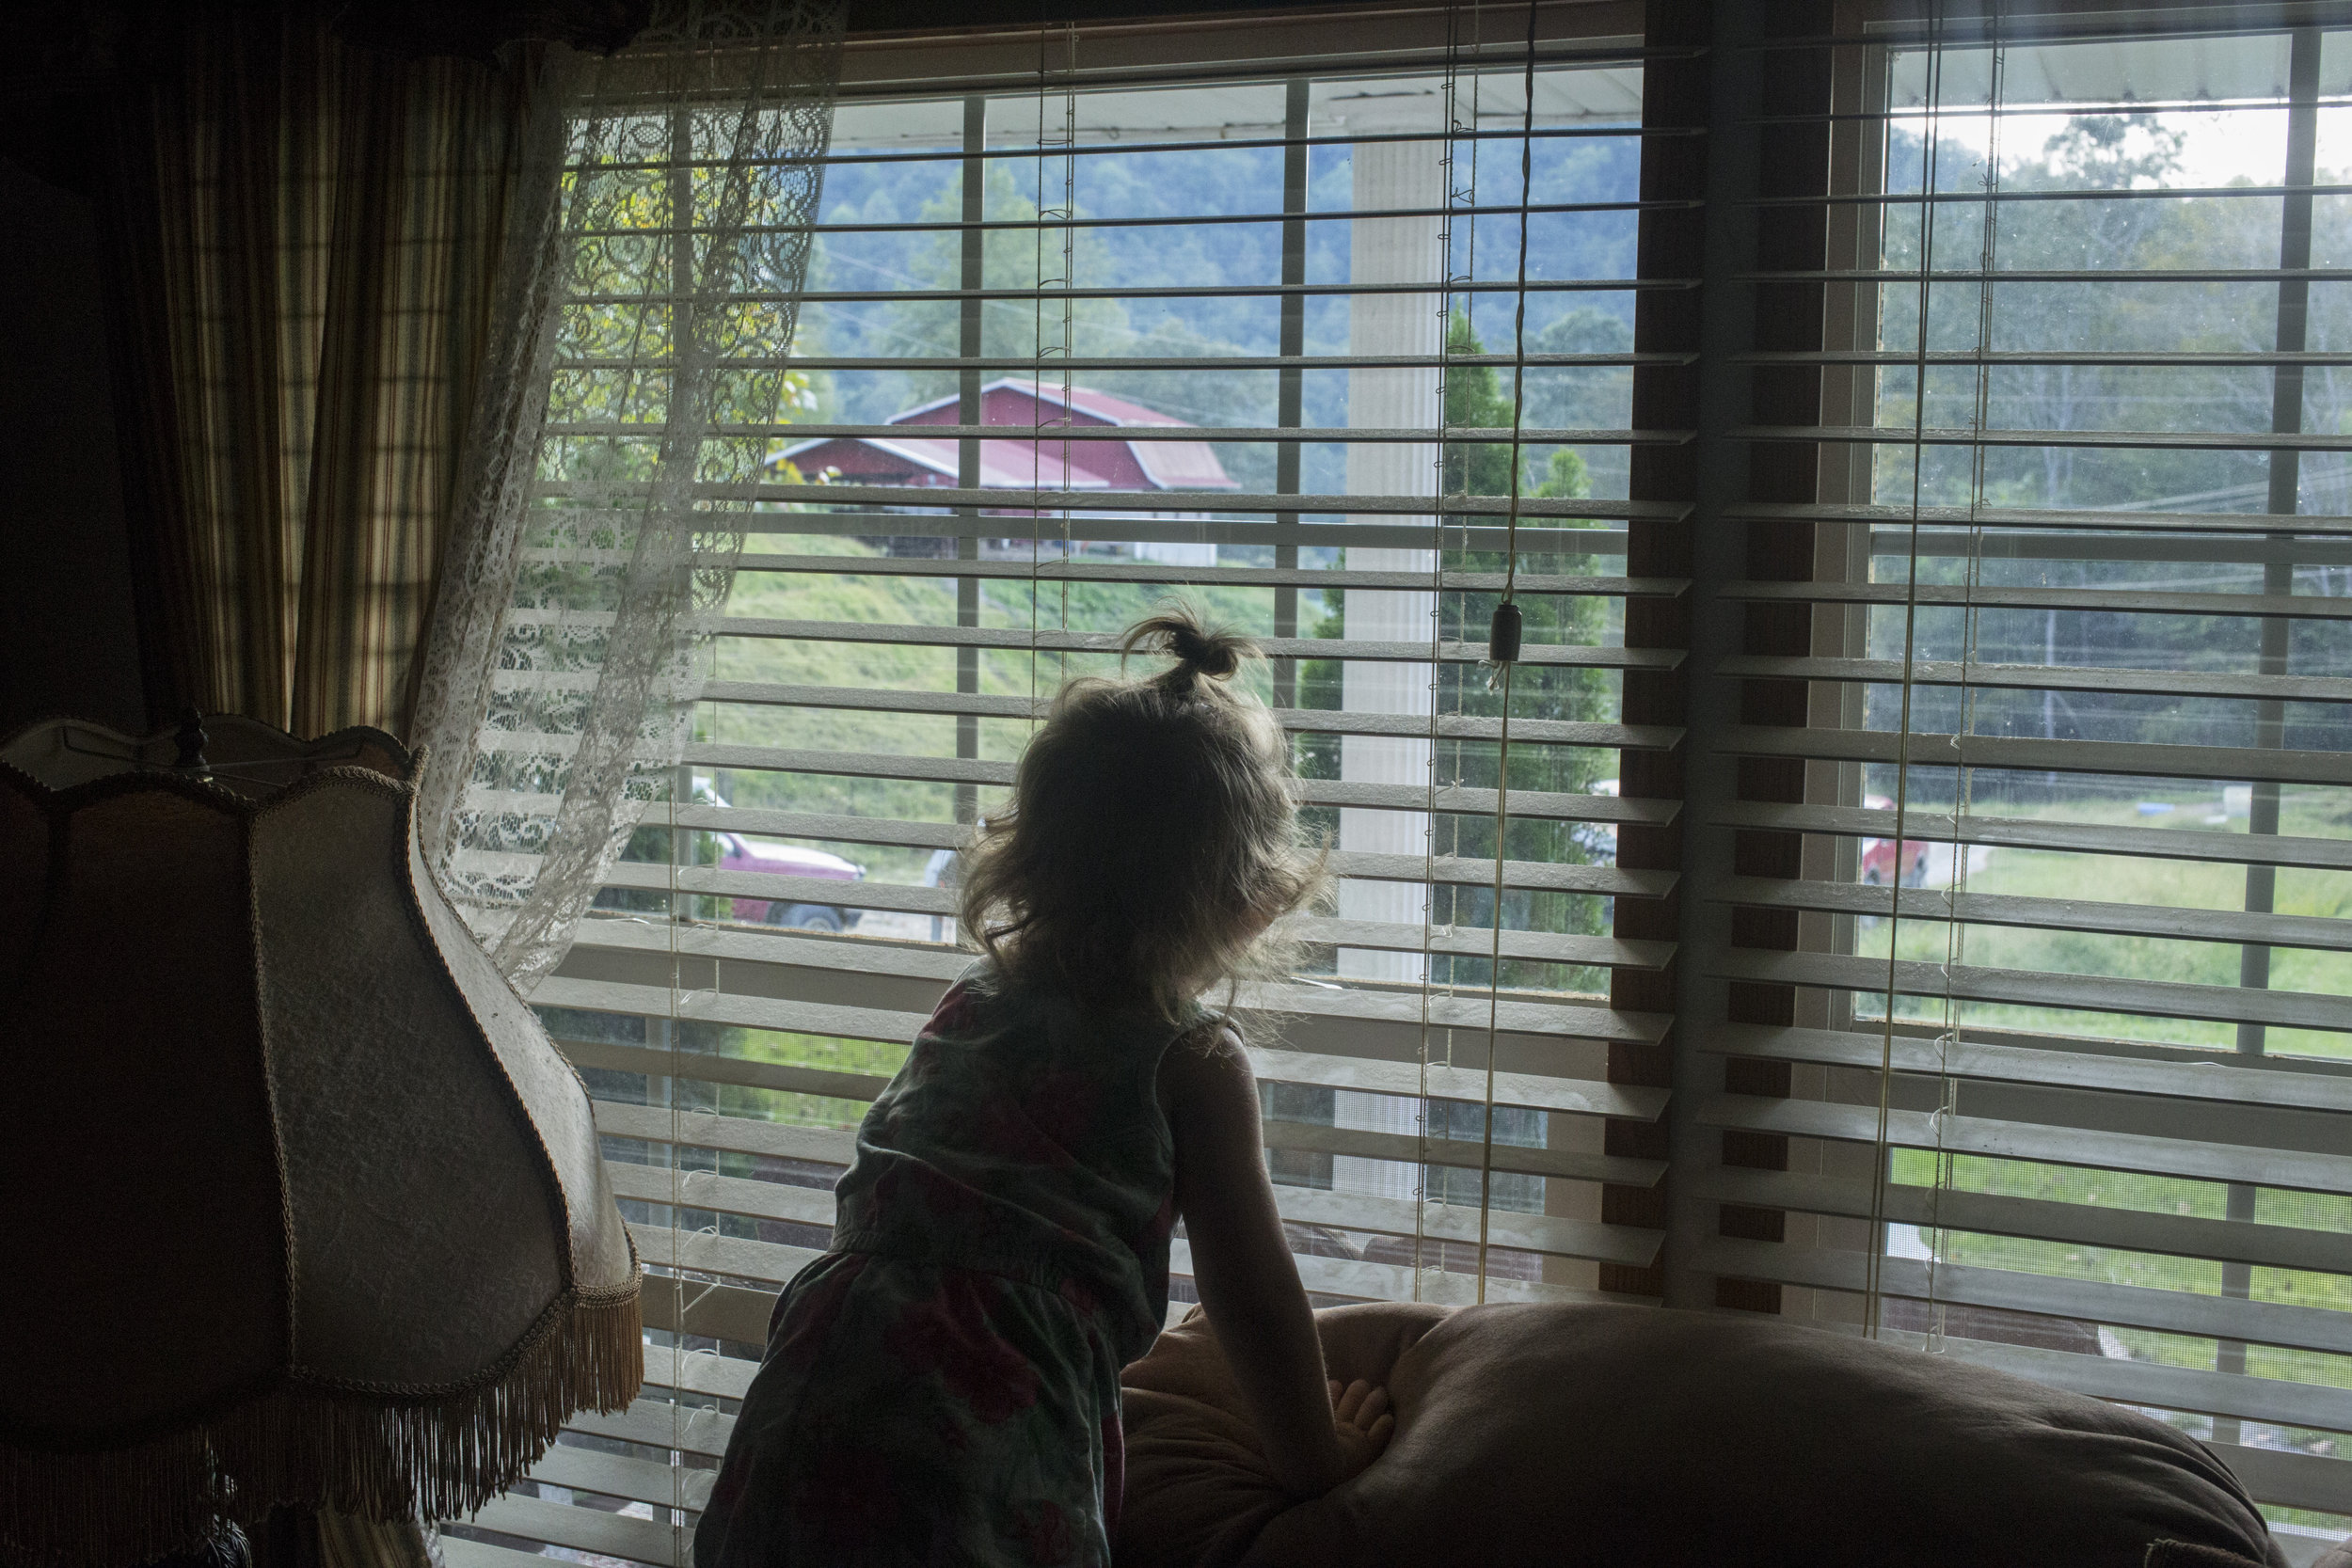 Paisley Jarvis, 2, peeks out the window of her father's living room in Langley, Ky., on Tuesday, September 26, 2017.